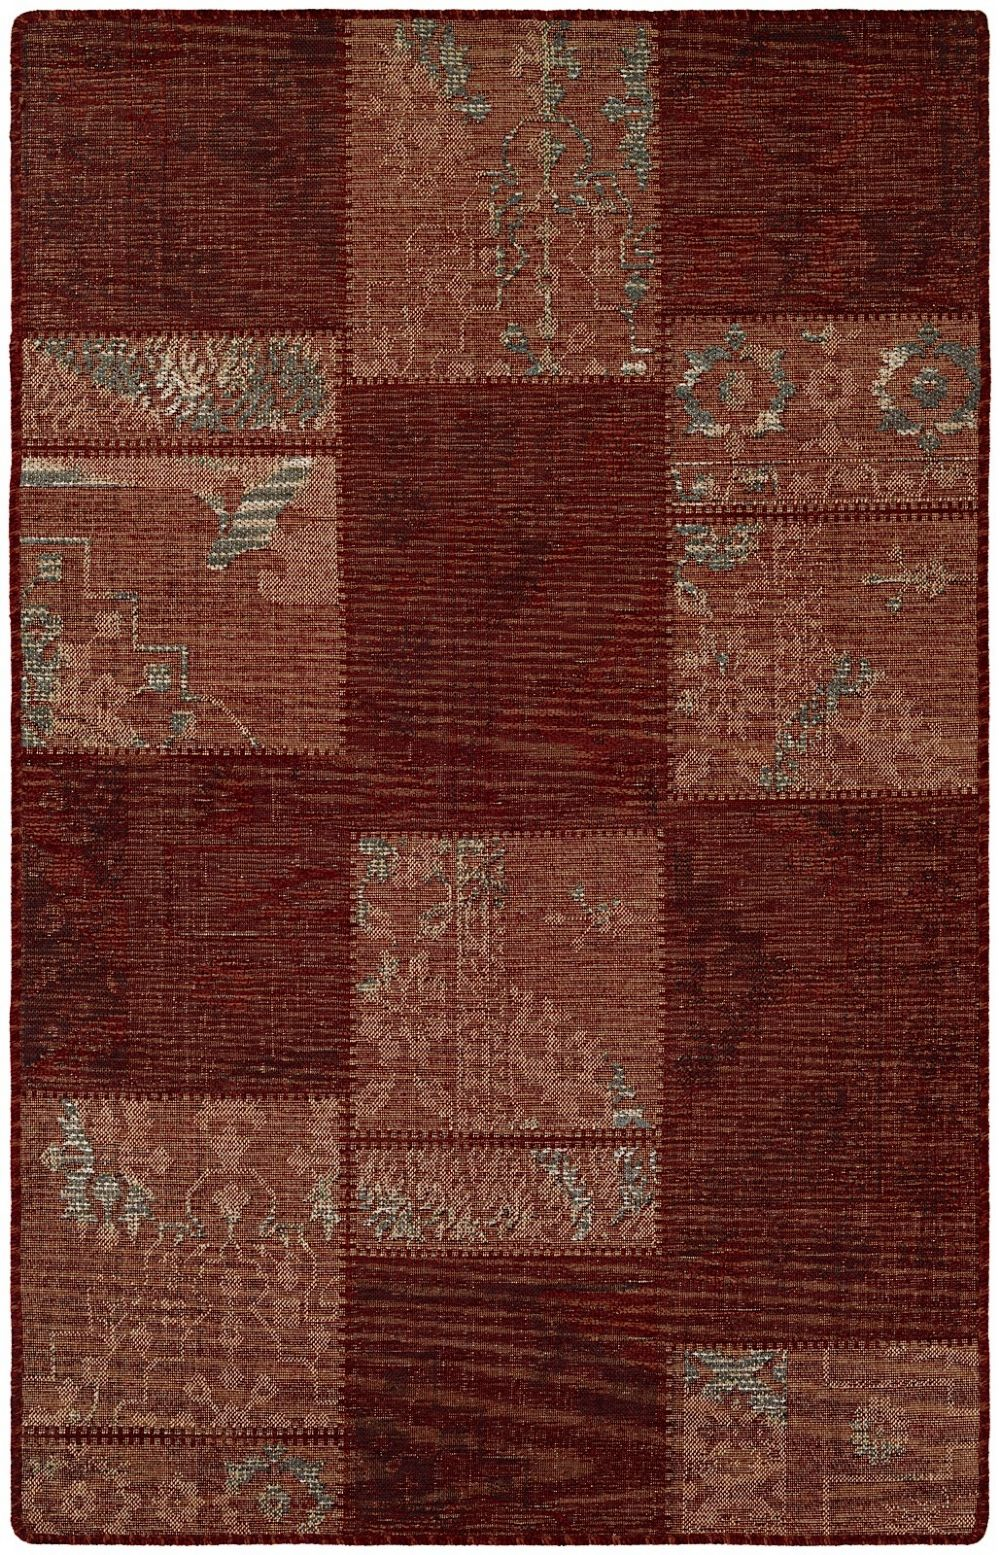 couristan mandolina southwestern/lodge area rug collection